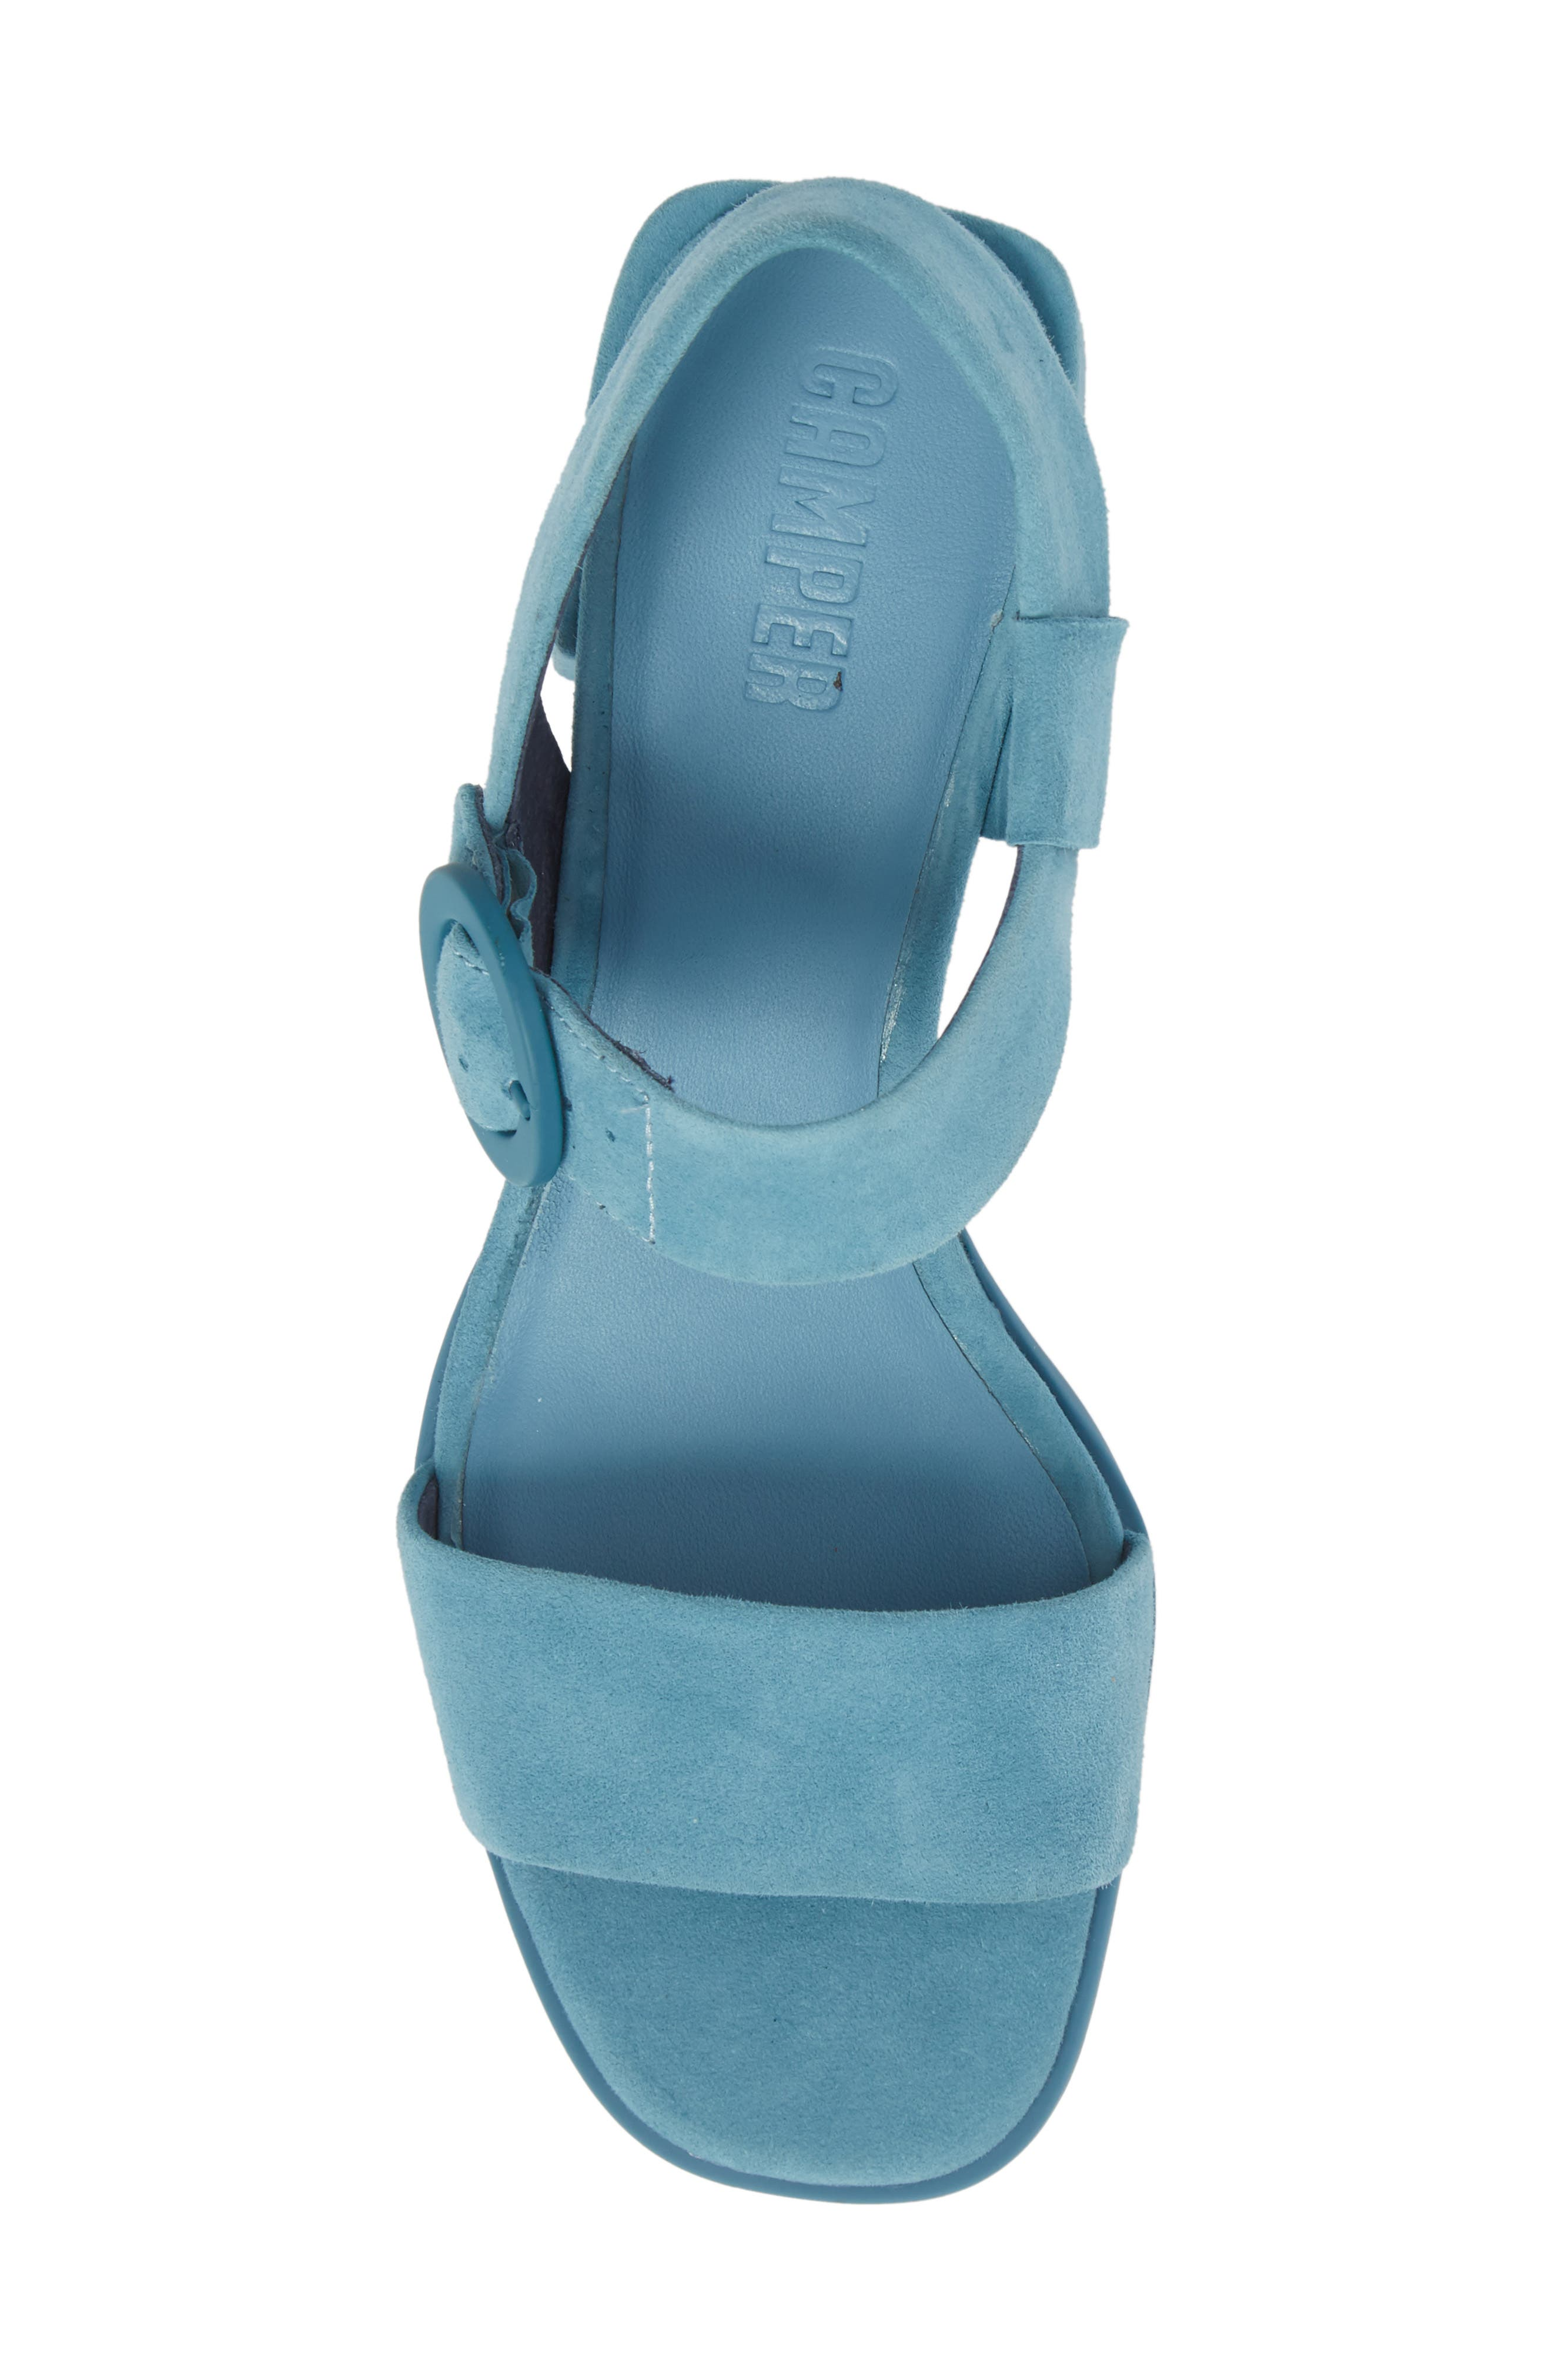 Kobo Sandal,                             Alternate thumbnail 5, color,                             Medium Blue Suede